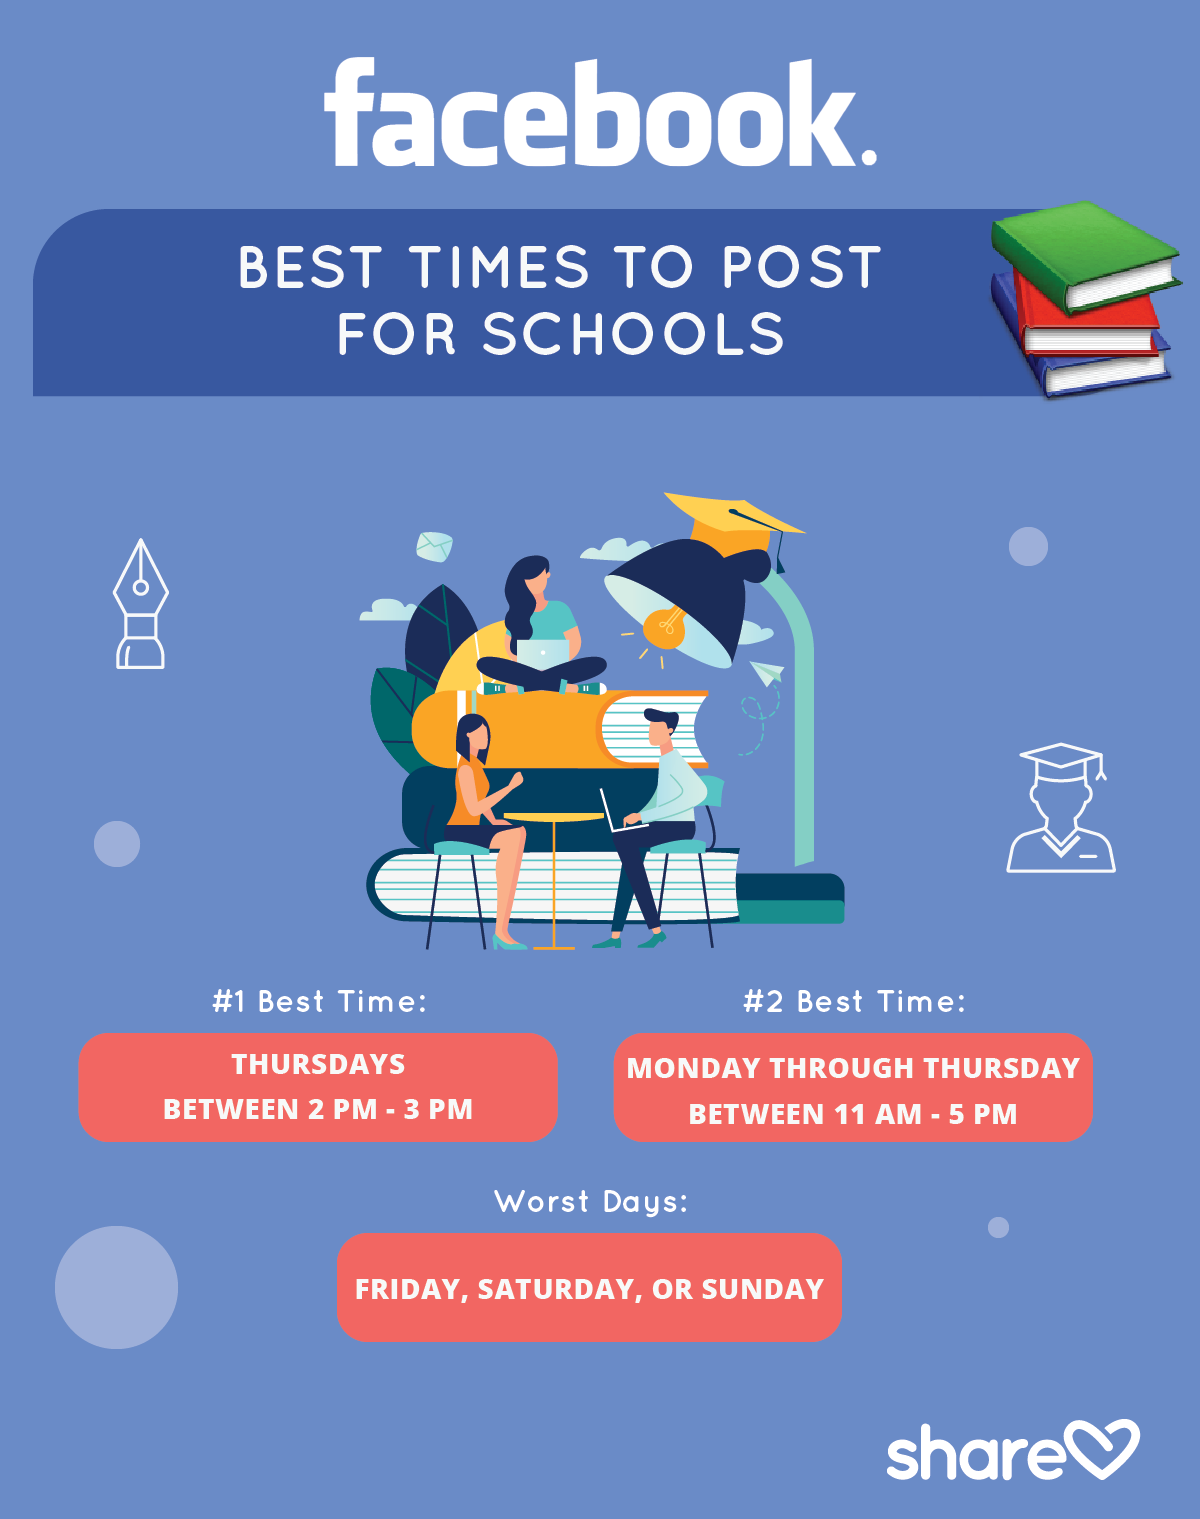 Best Times to Post on Facebook for schools